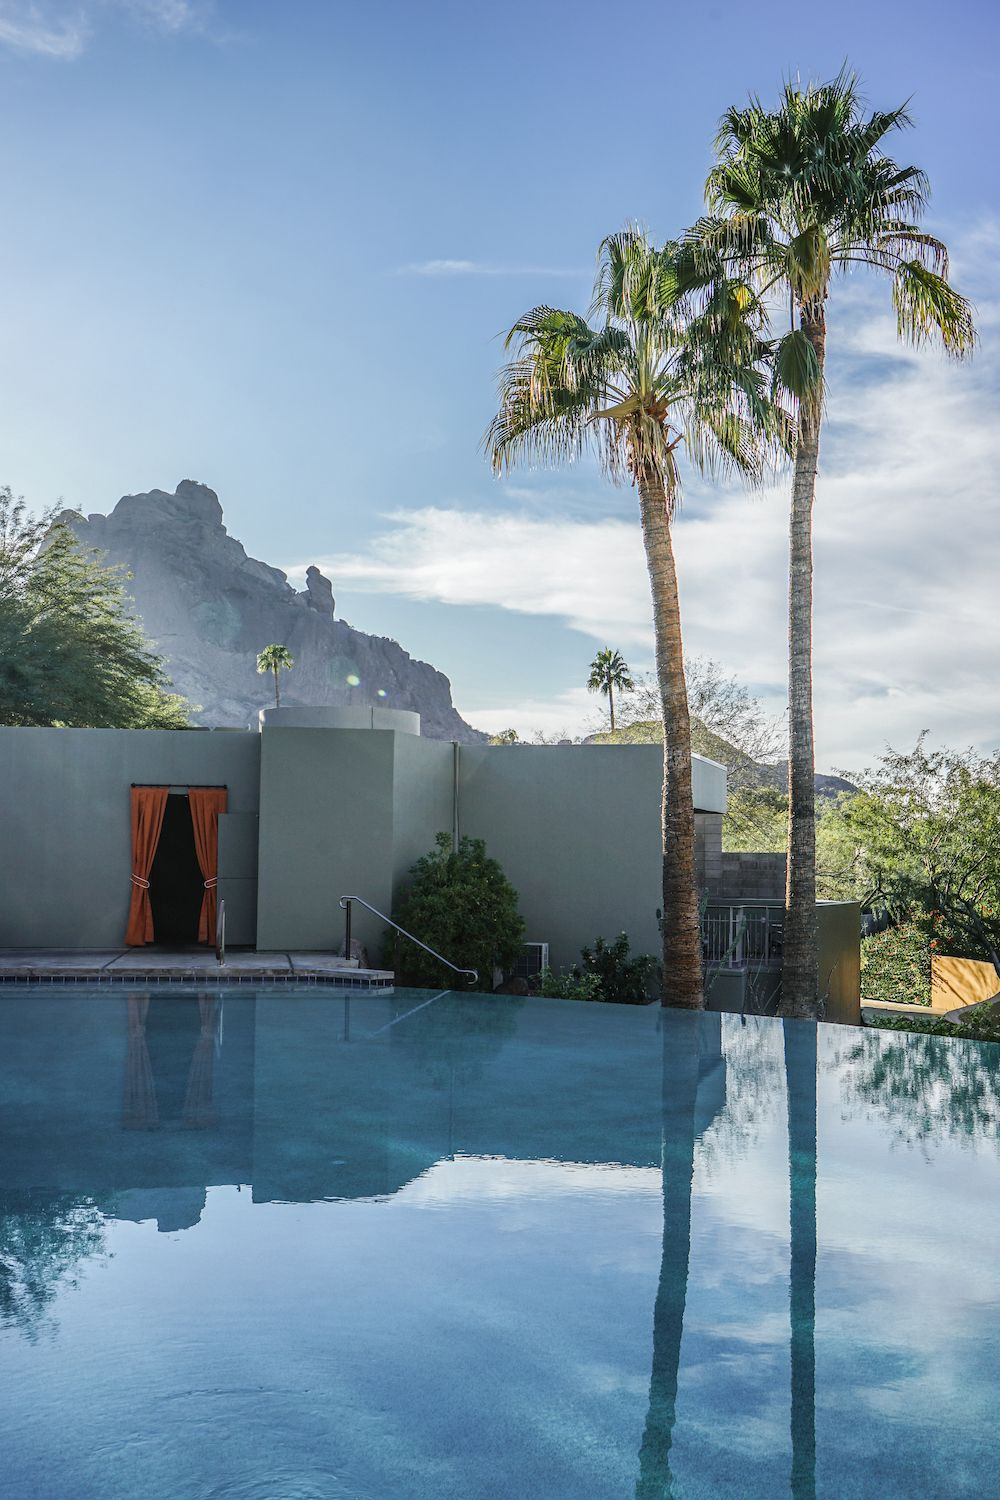 c5c8151f72 Sanctuary, Camelback. A luxurious boutique hotel nestled on Camelback  Mountain. It was a relaxing pit stop to heal both the mind & body.